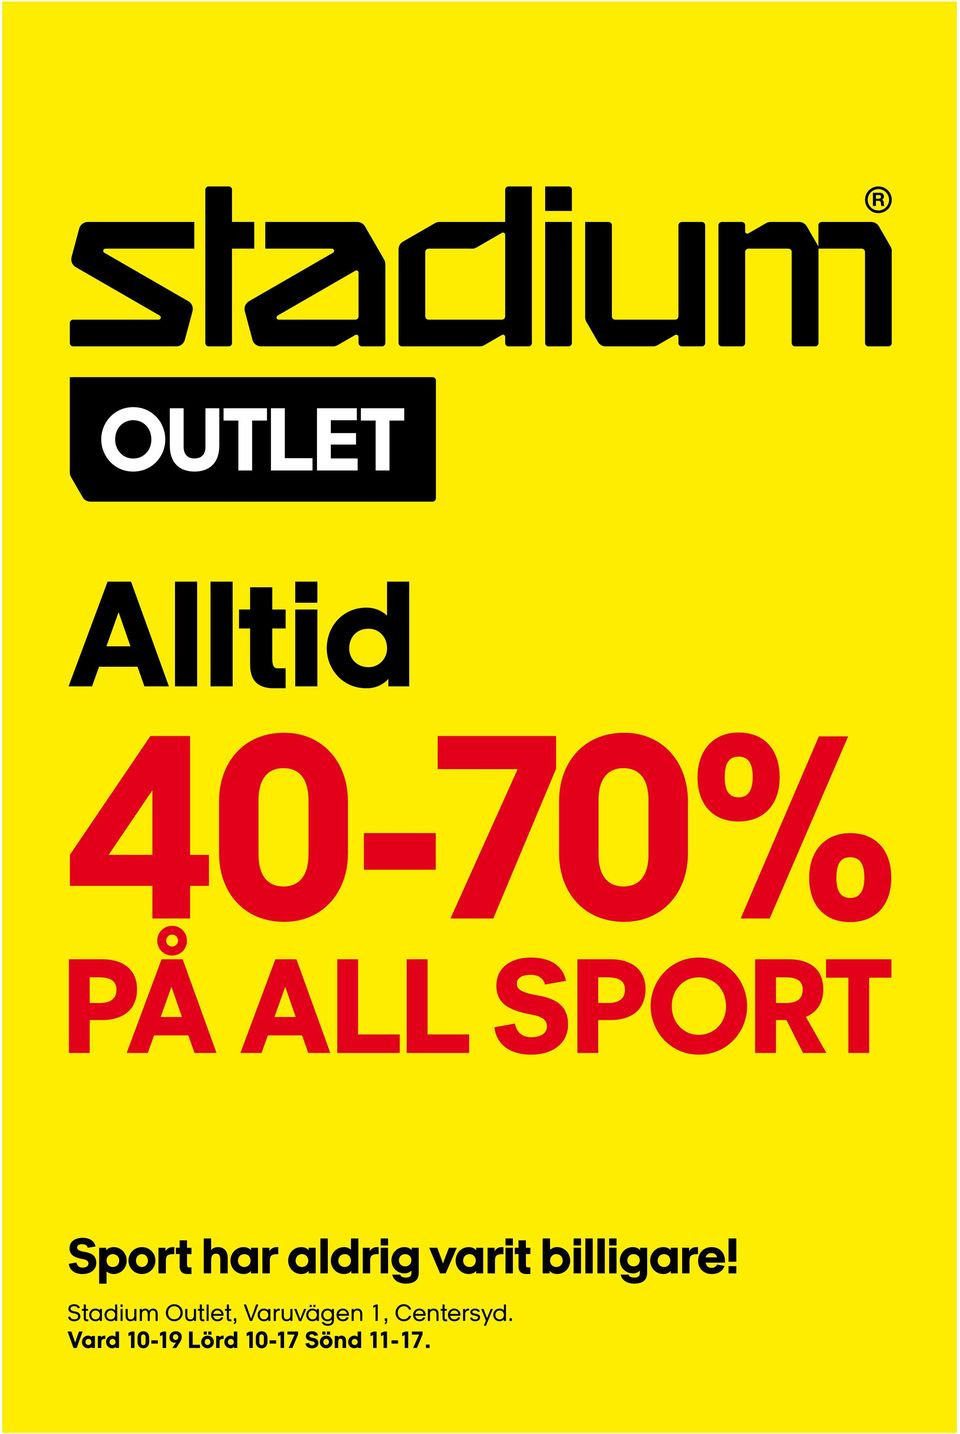 Stadium Outlet, Varuvägen 1,